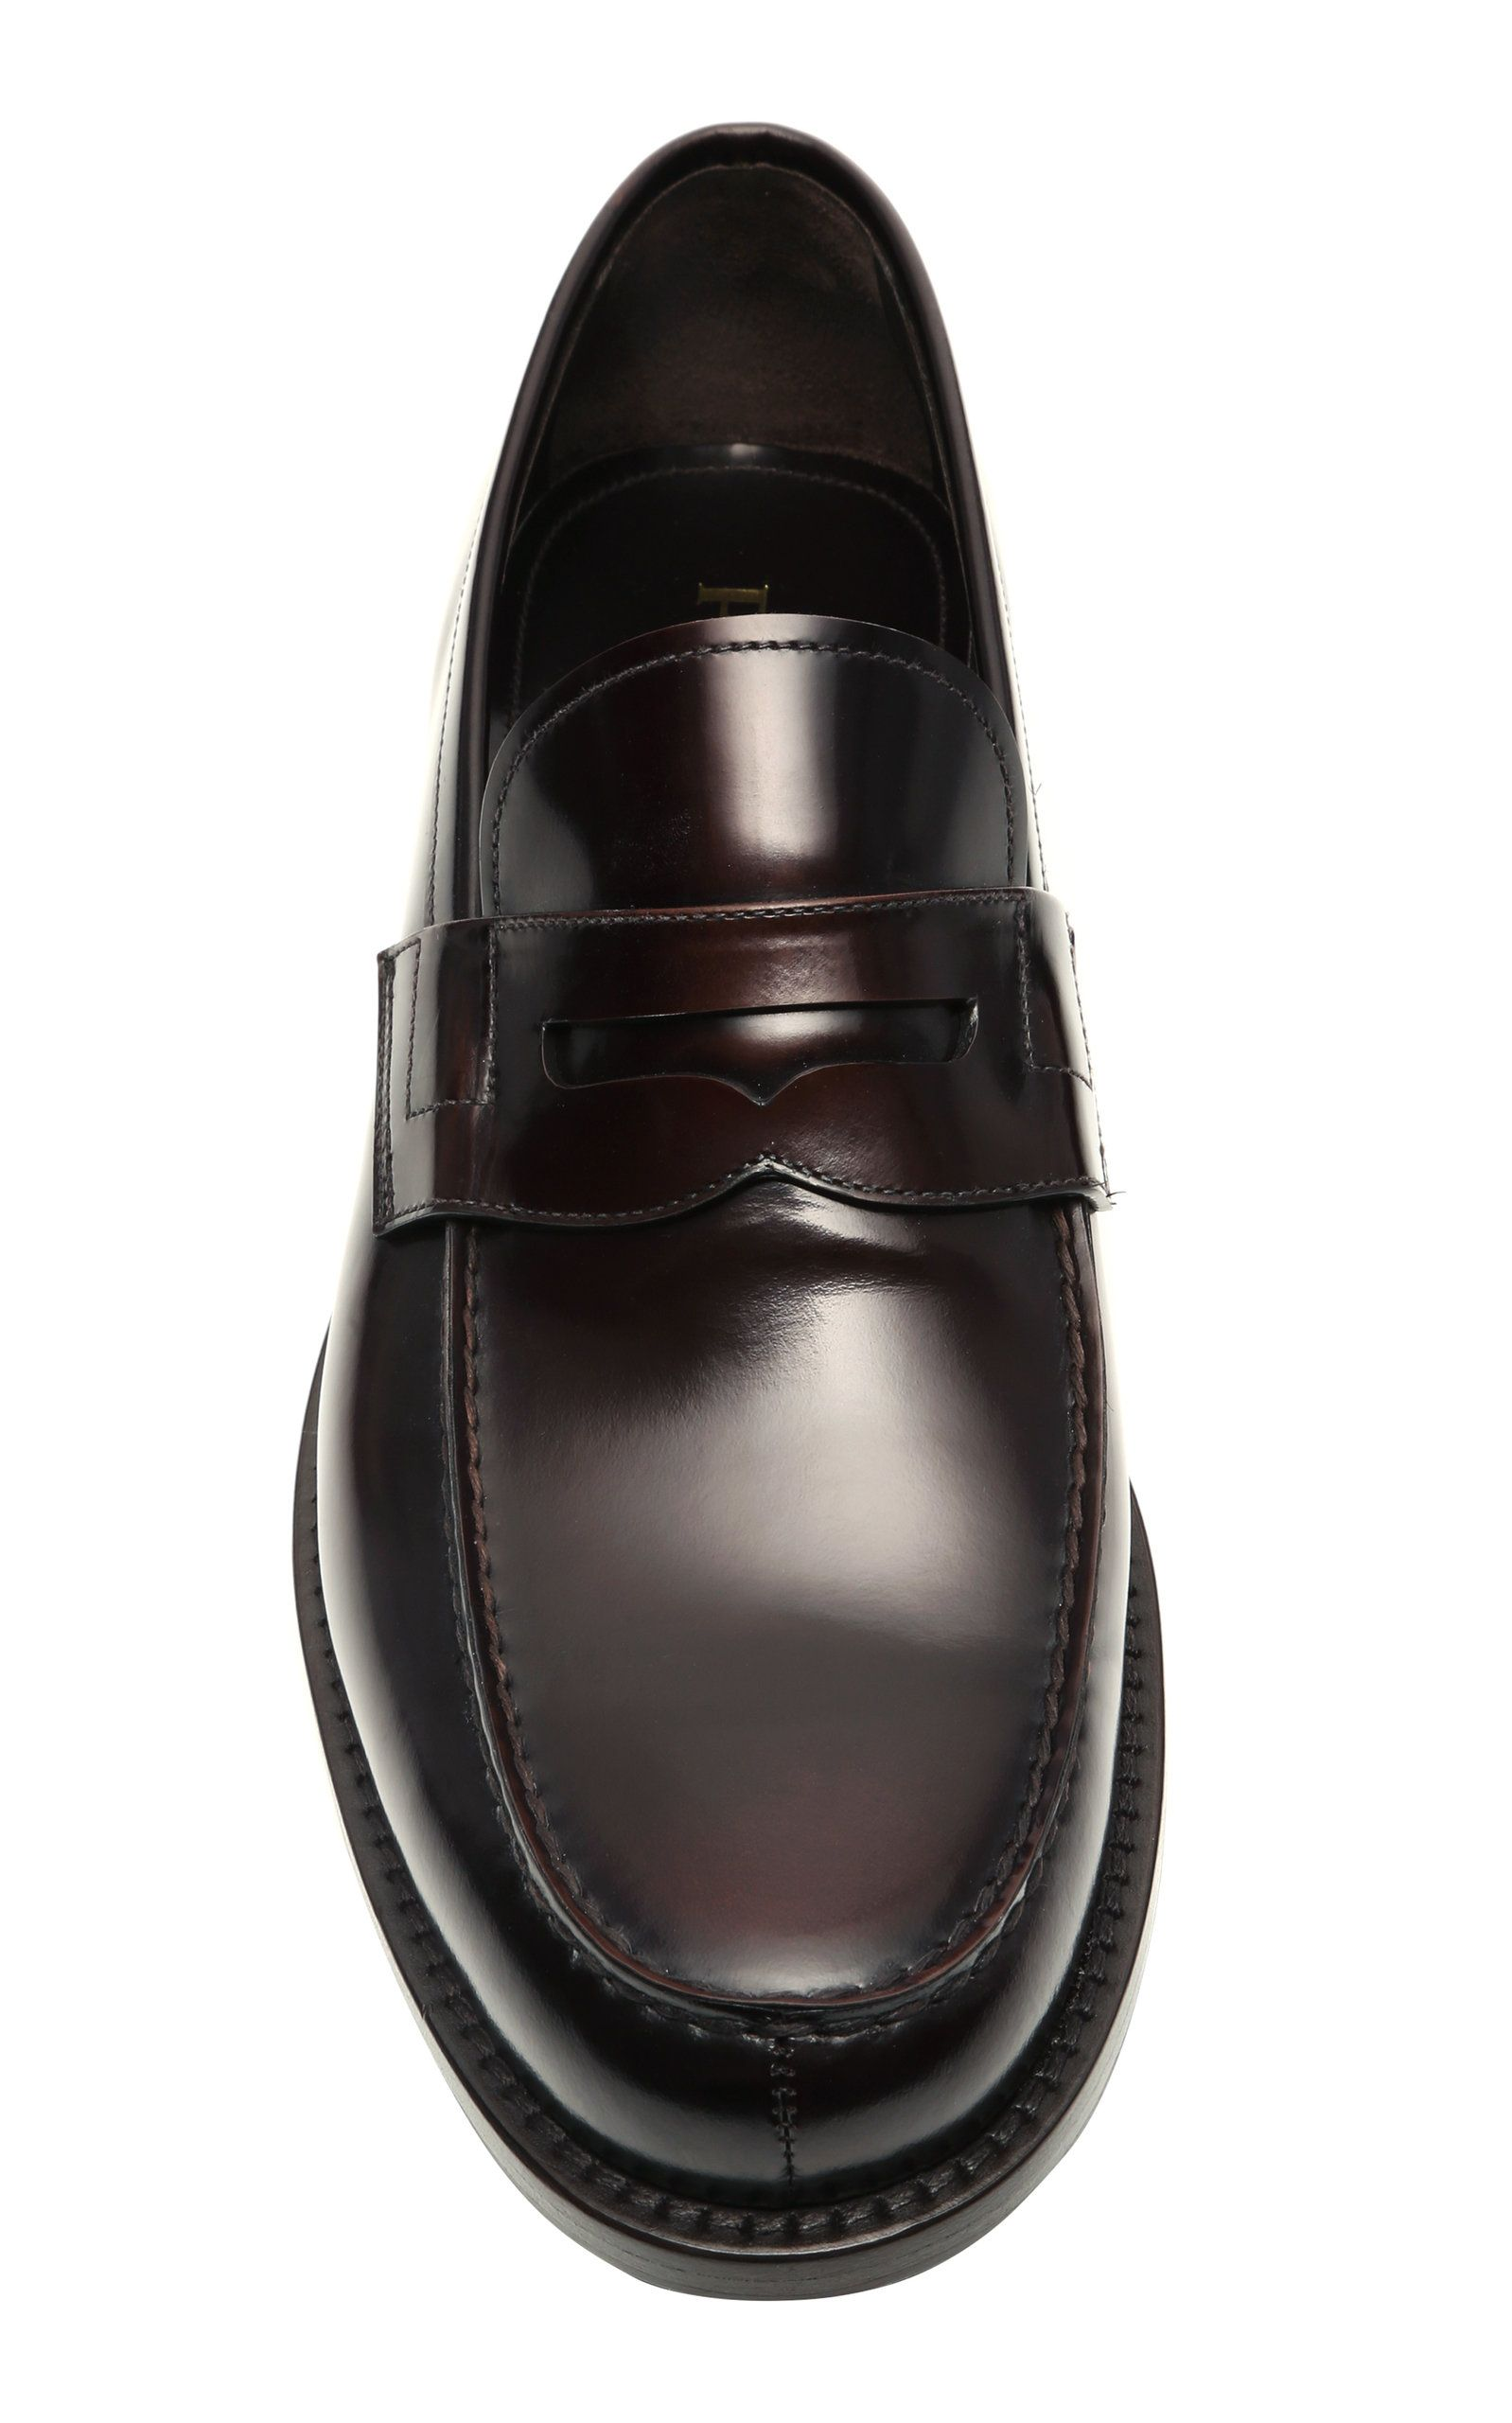 Prada Leather Penny Loafers in 2020